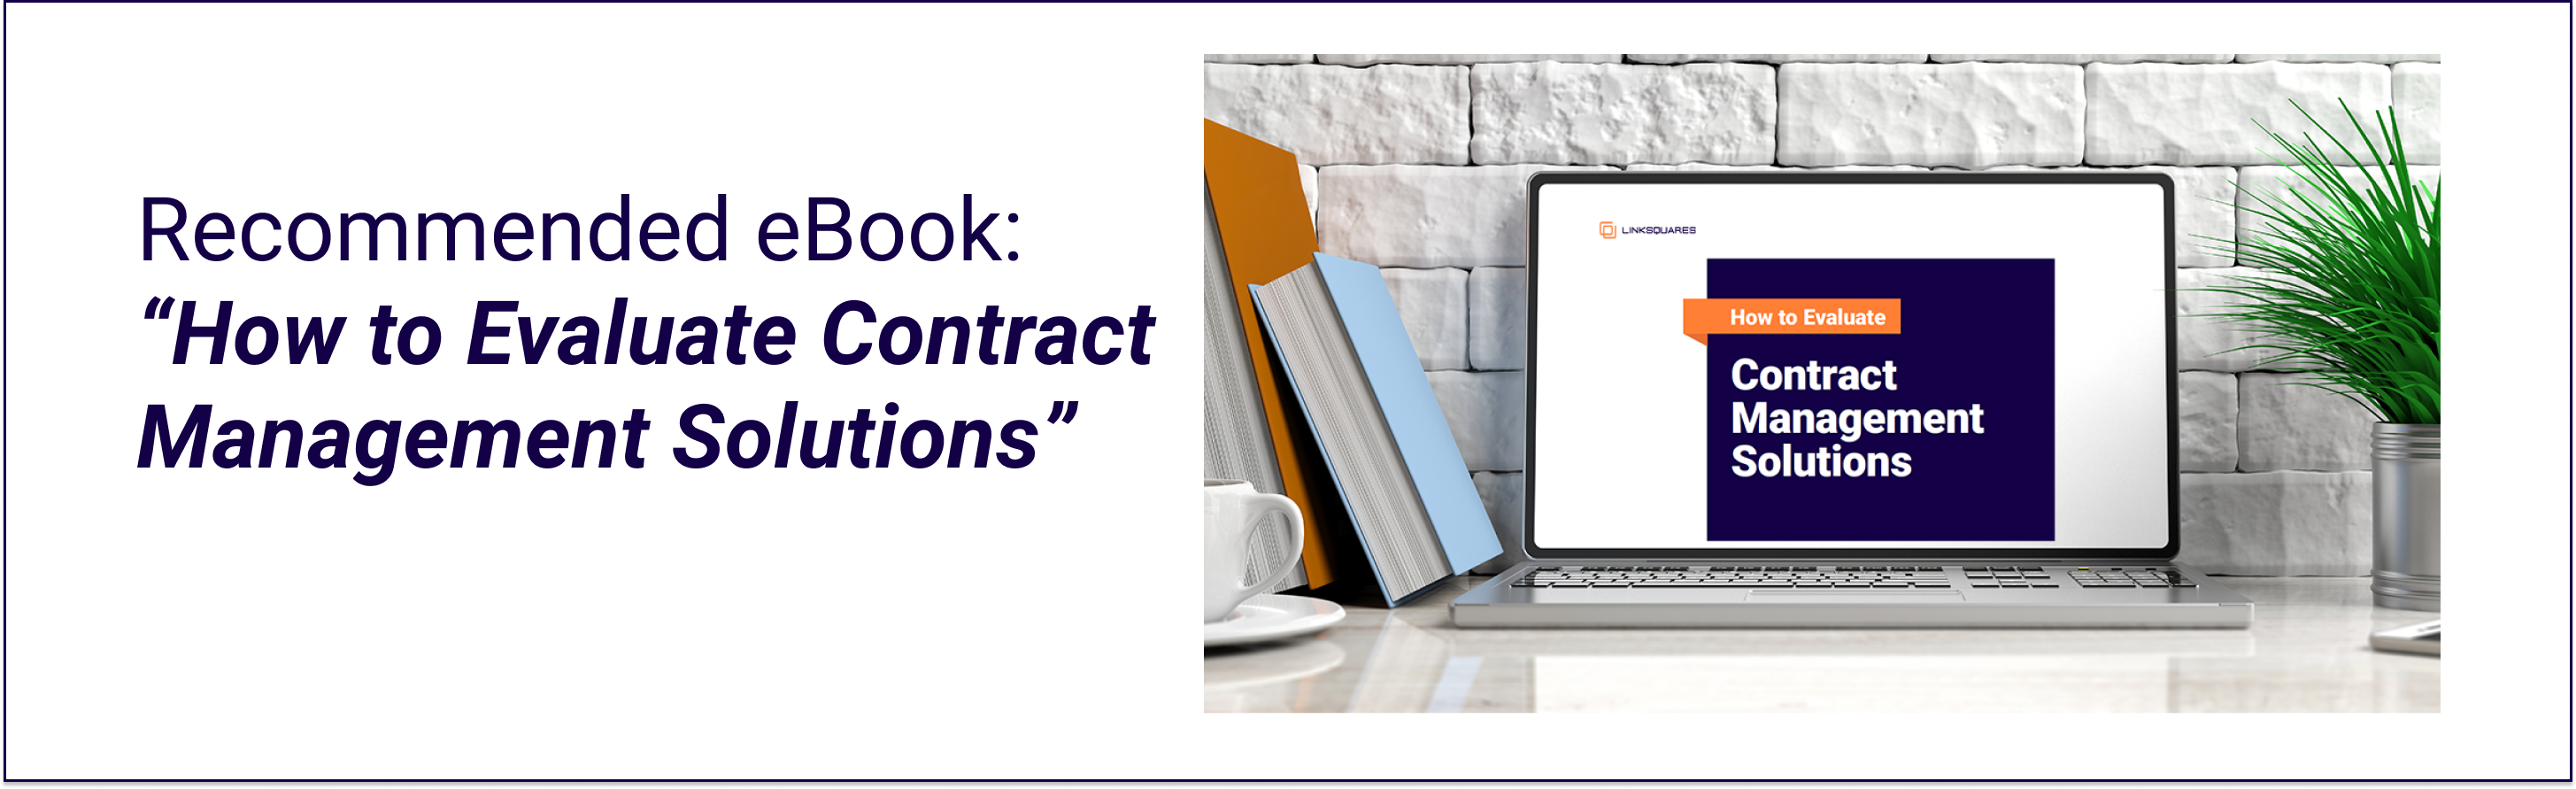 Contract Management Solutions